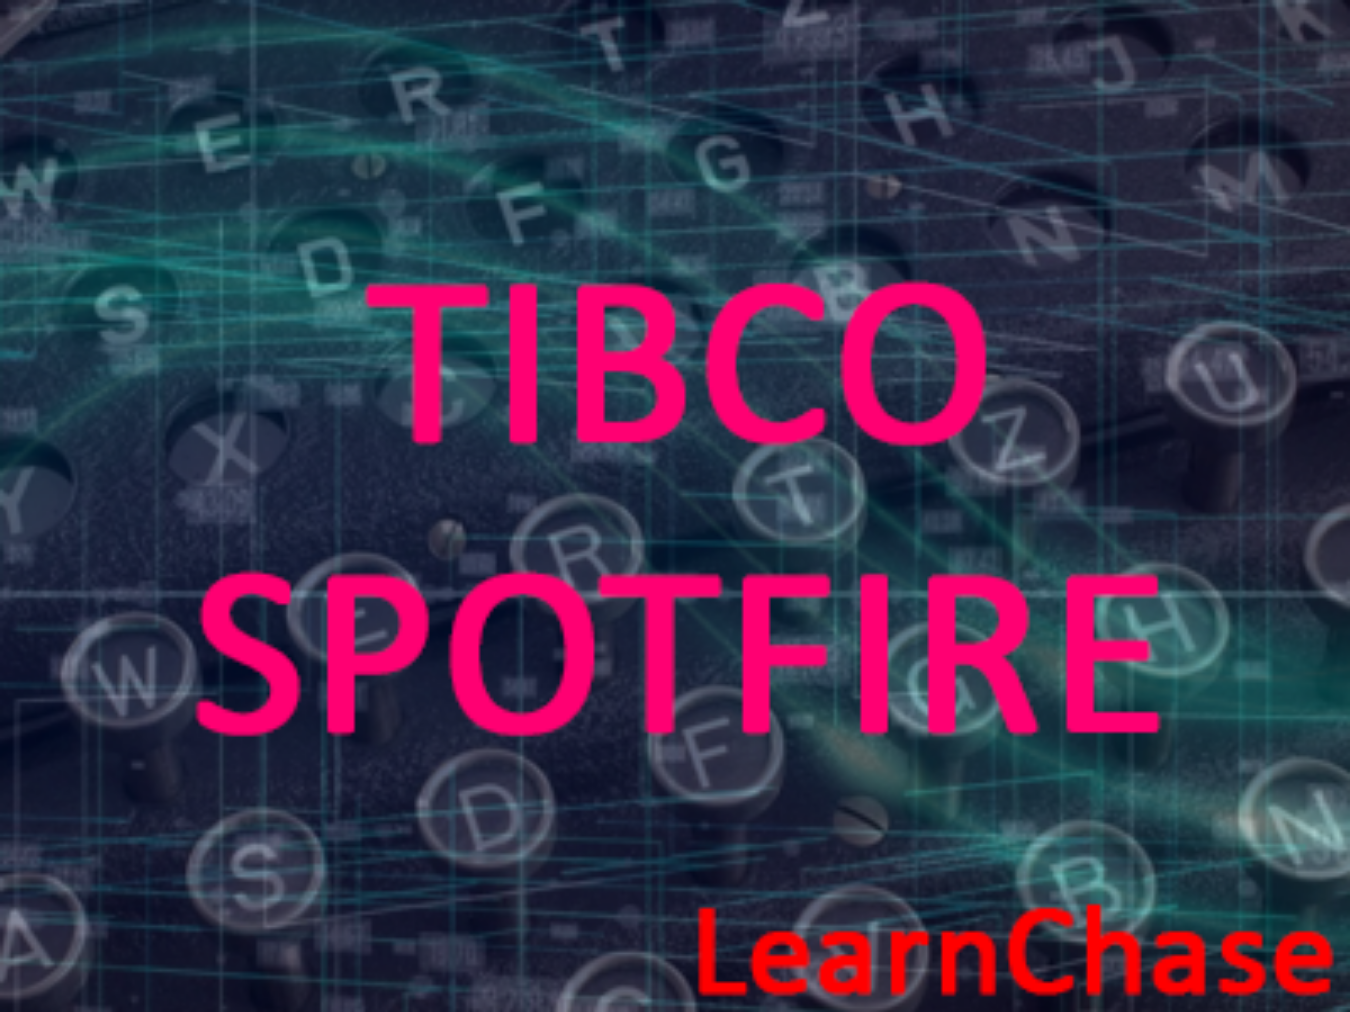 TIBCO SPOTFIRE ONLINE TRAINING Tickets by learnchase, 7 Dec, 2018